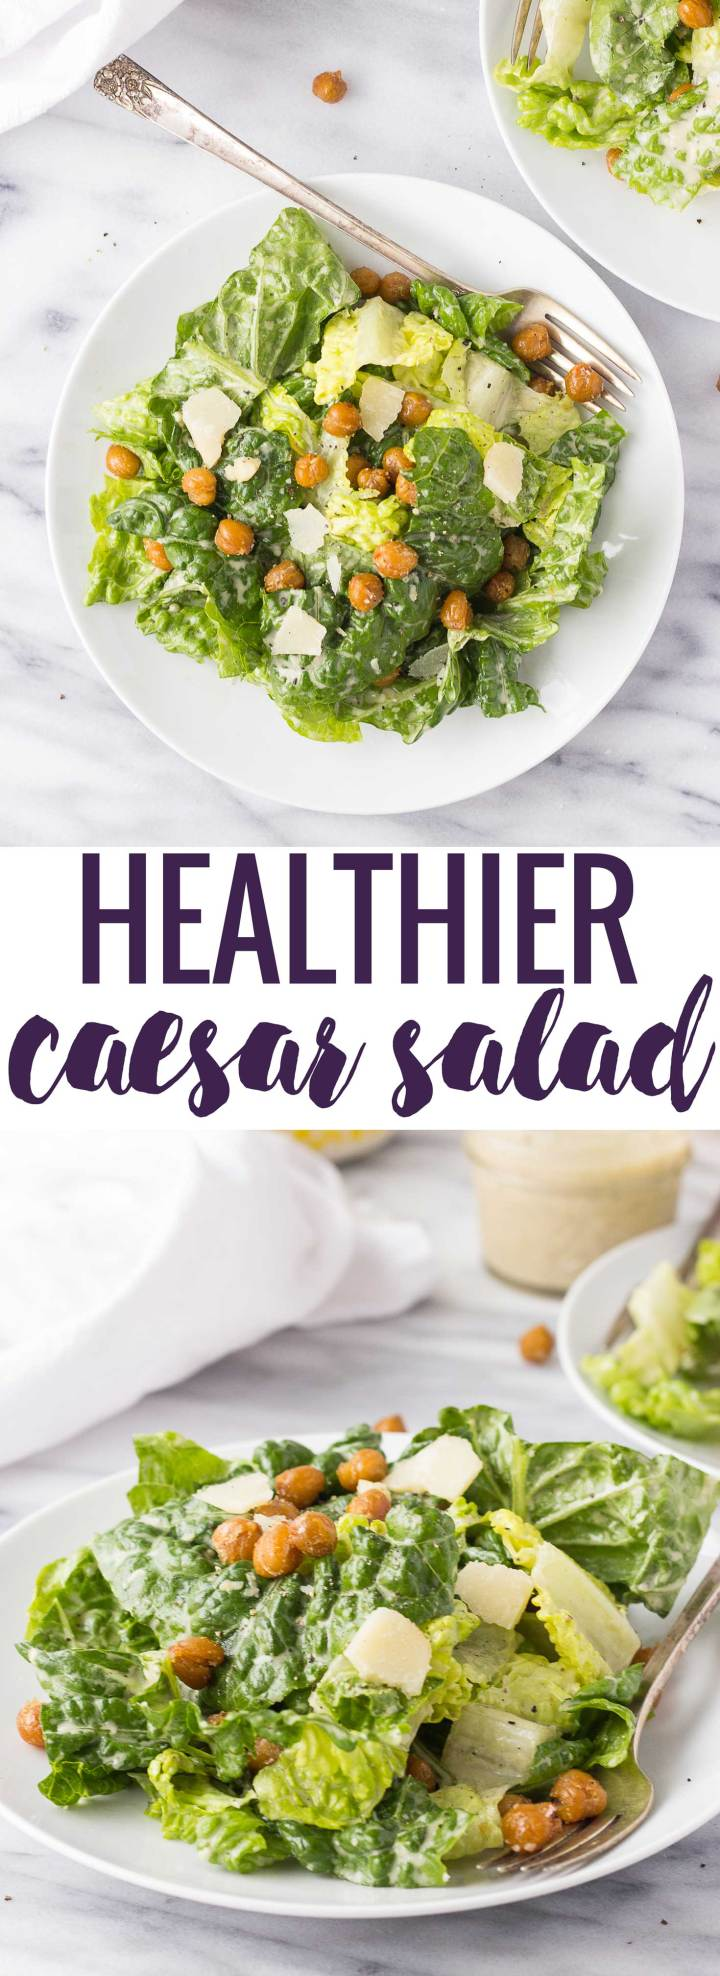 Healthier Caesar Salad - use roasted chick peas for an added flavor and crunch instead of croutons; the homemade dressing is out of this world, too!